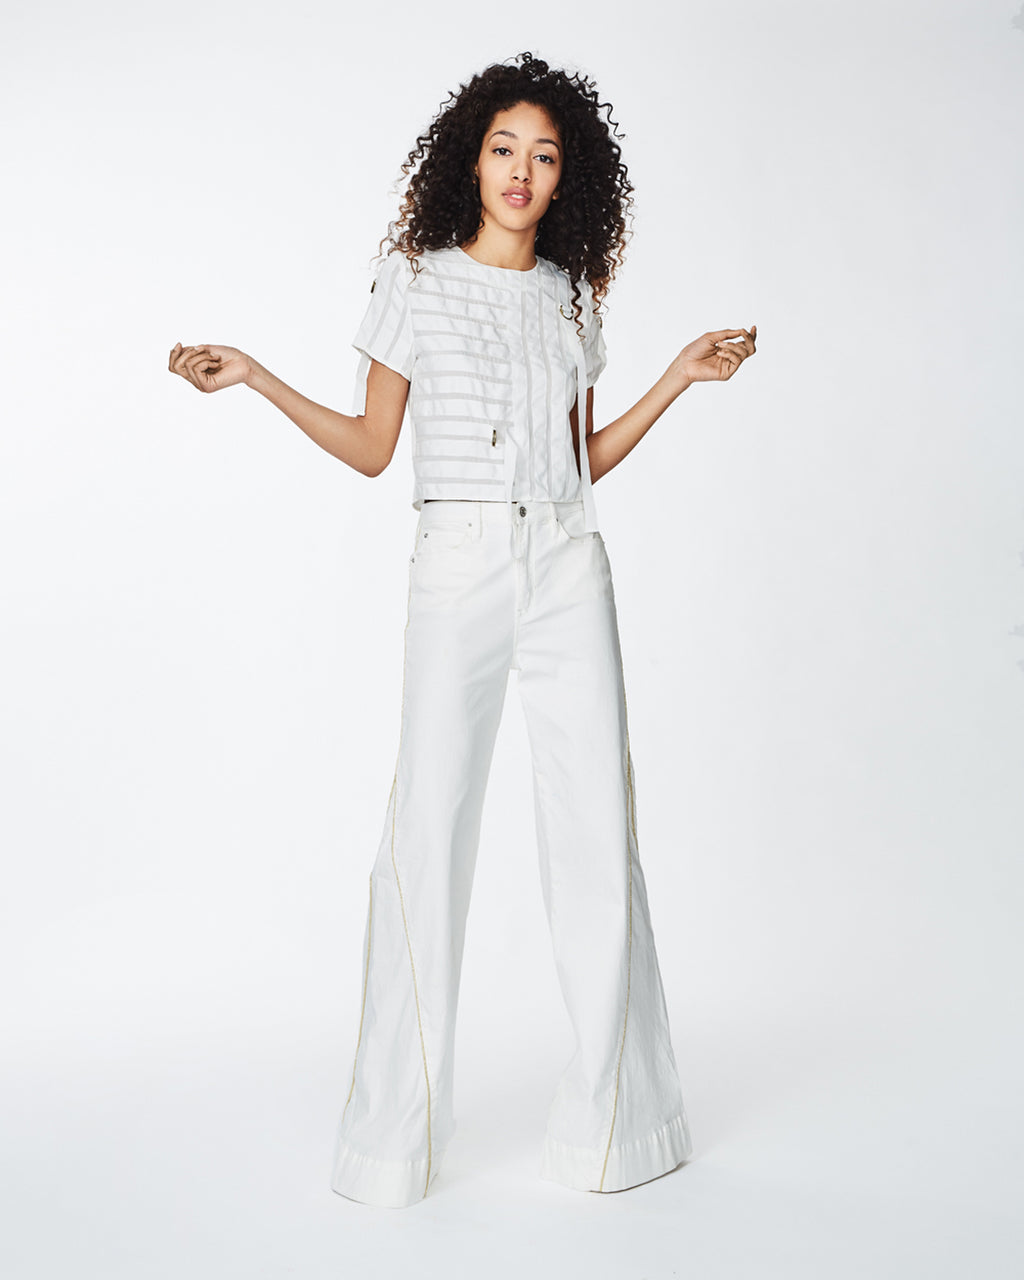 BO10137 - GROSGRAIN blouse - tops - blouses - Grosgrain strips contrast with the white silk for a trendy cropped blouse. This lightweight top is completed with belted details and a concealed zipper for closure. Final Sale